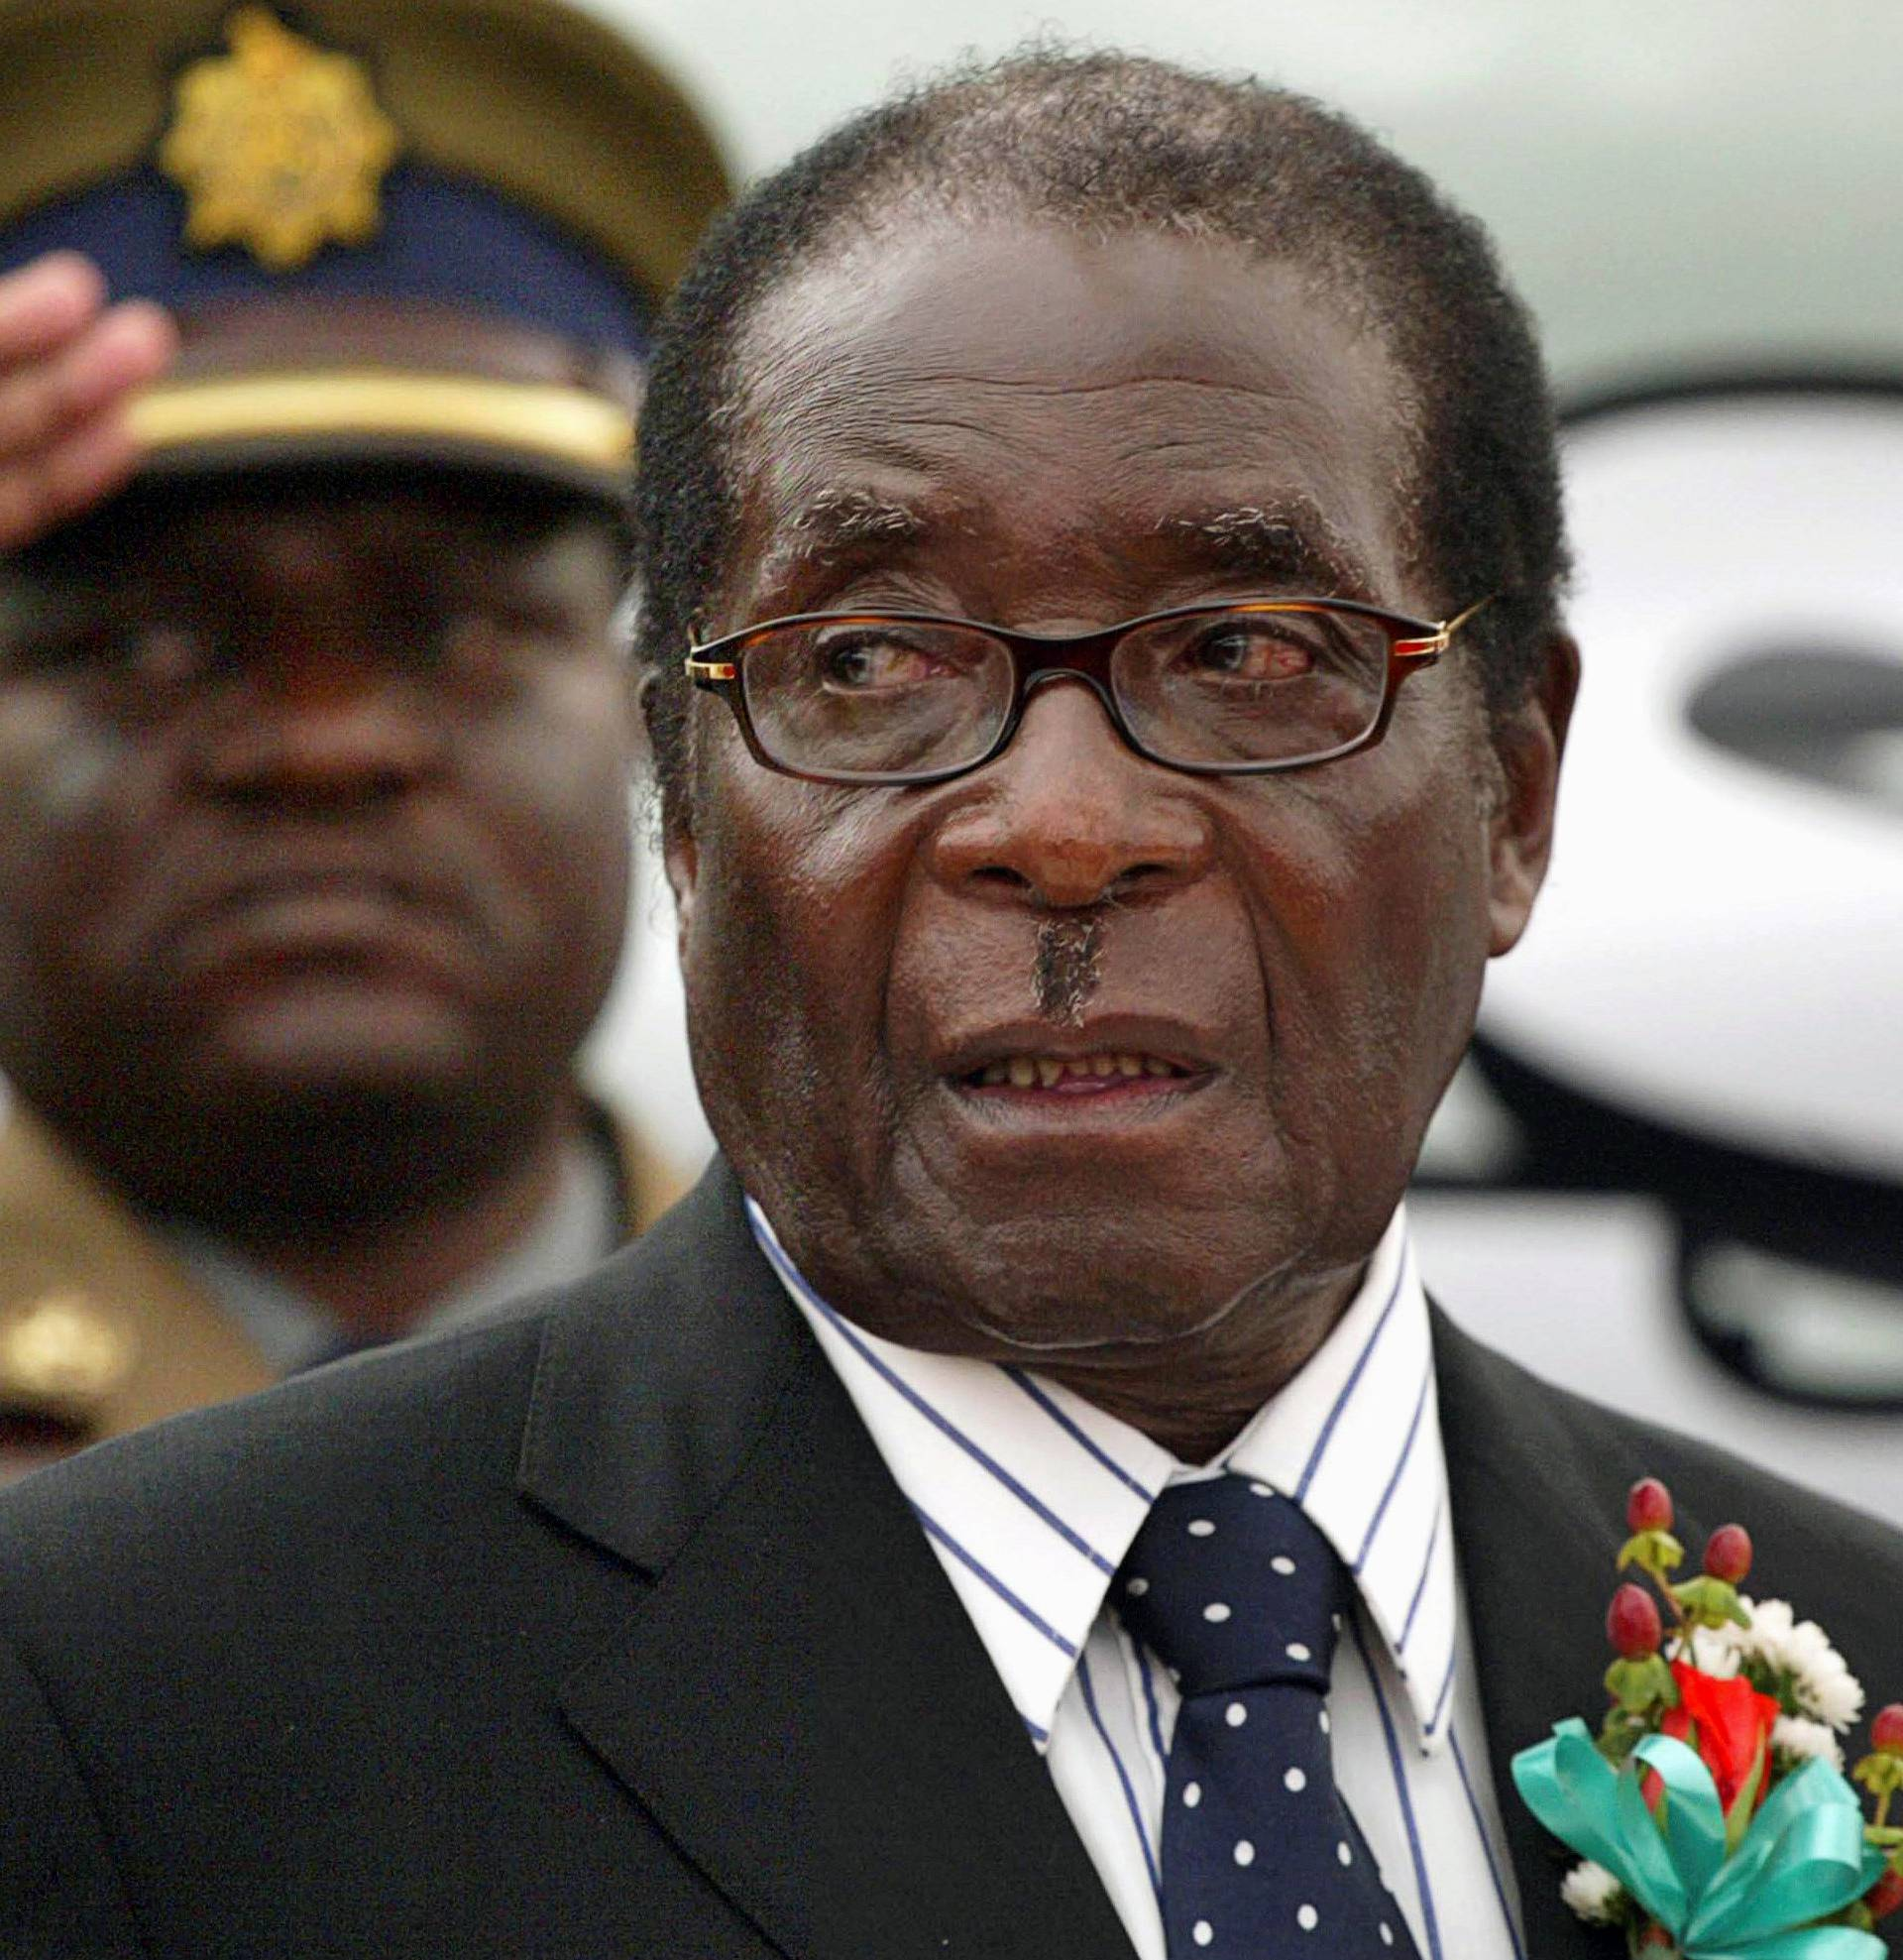 FILE PHOTO -  File photo of Zimbabwe President Mugabe attending the launch of basic commodities in Harare